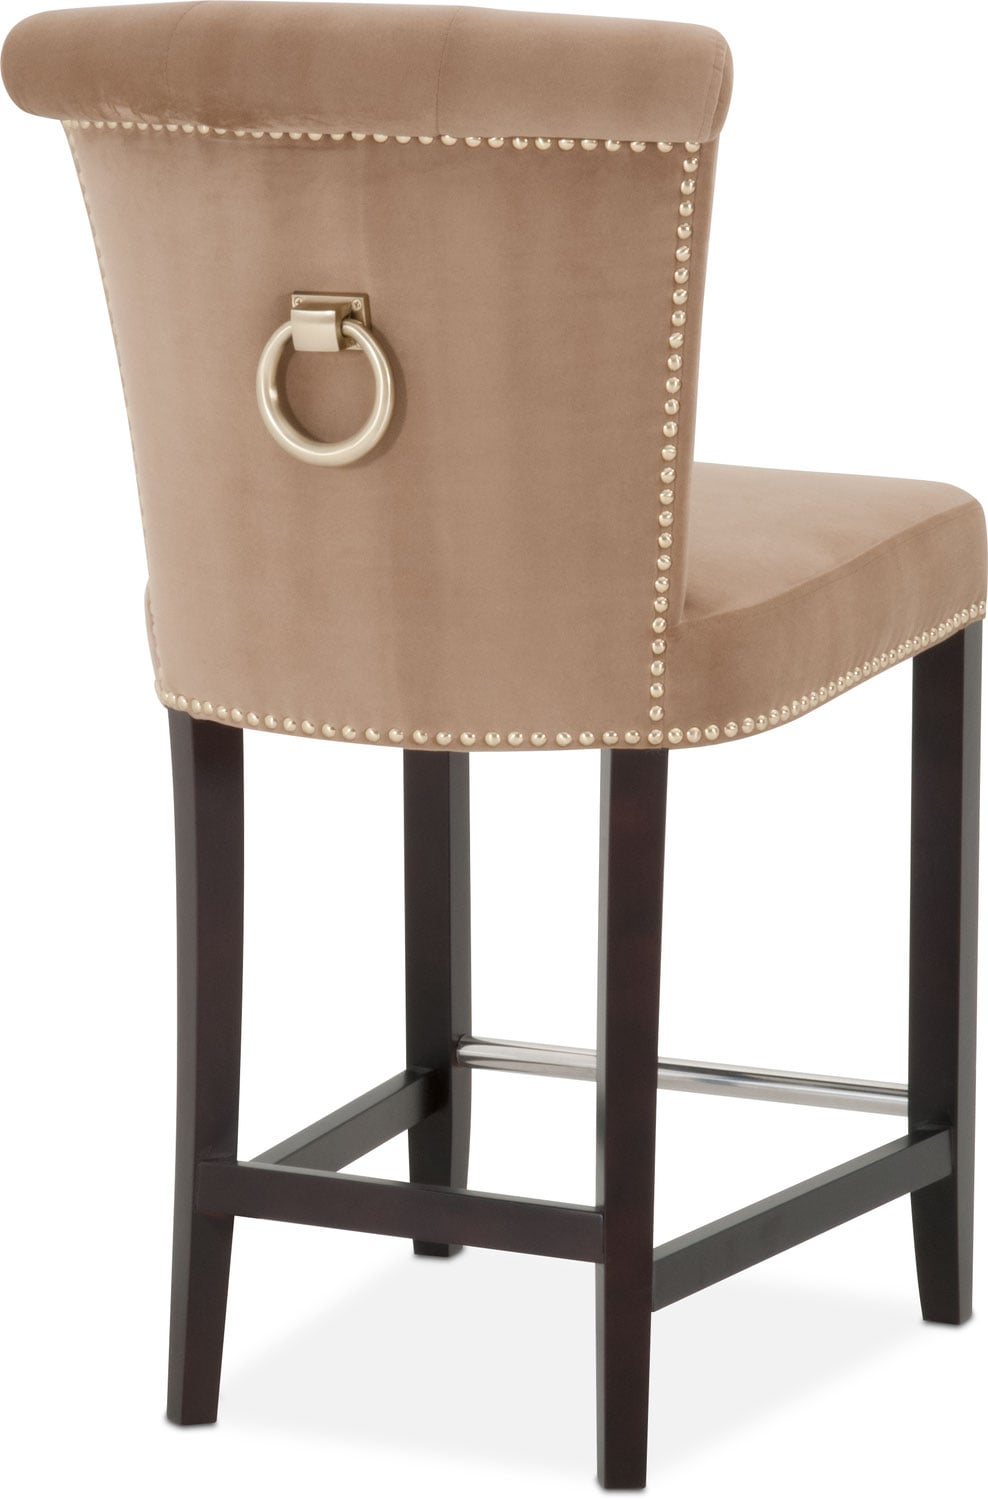 Calloway Counter Height Stool Camel Gold Value City Furniture And Mattresses